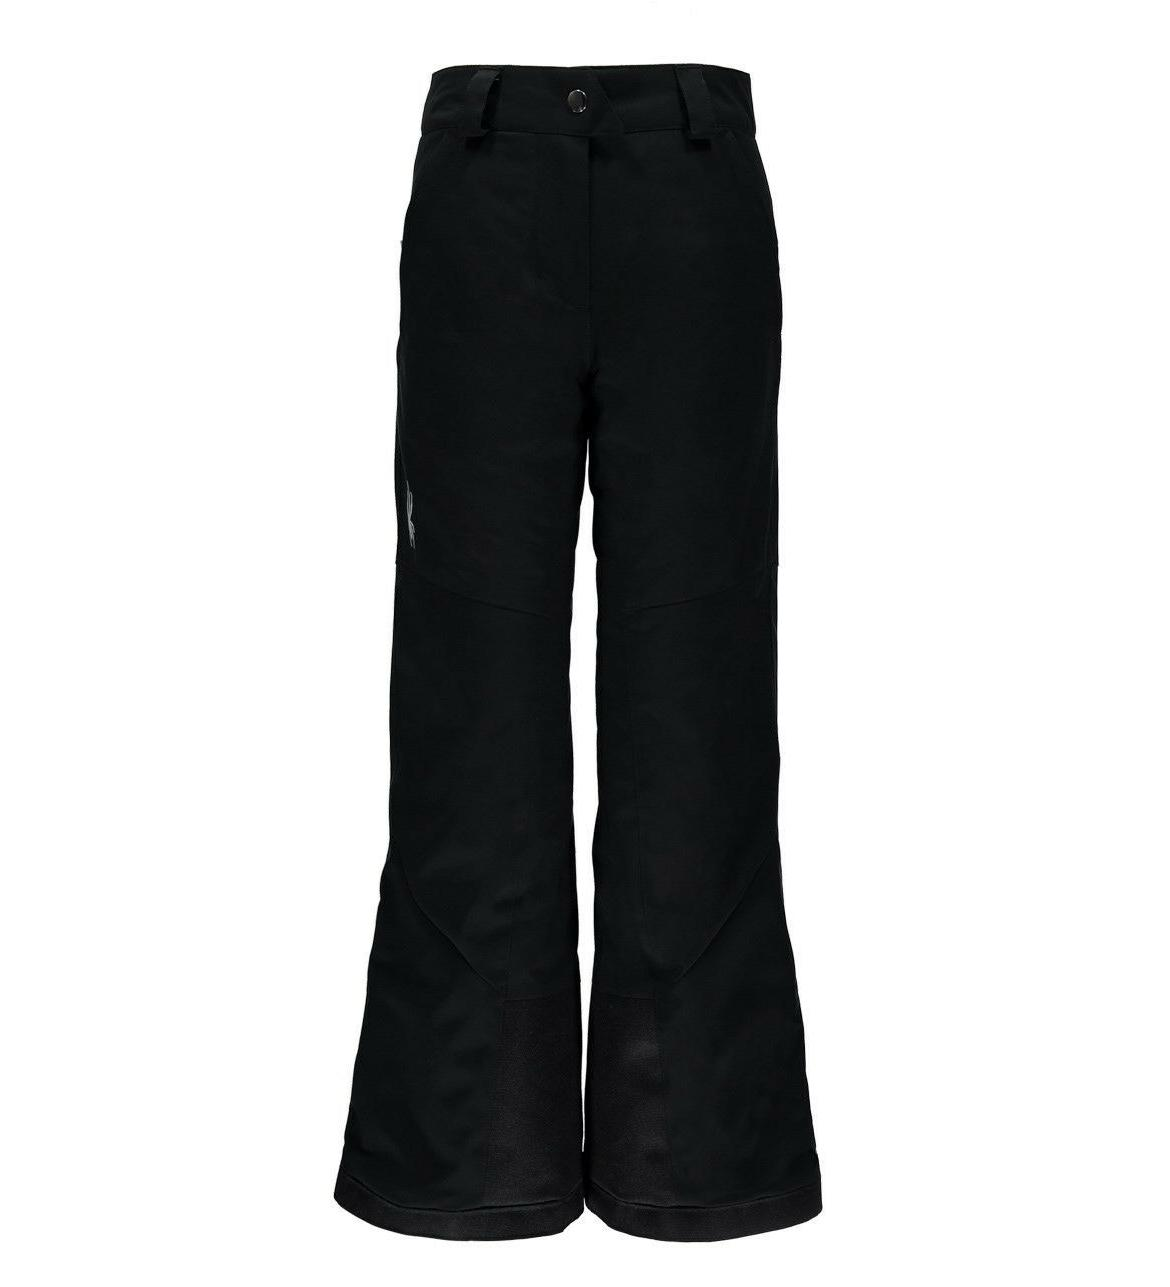 new vixen ski pants insulated waterproof black